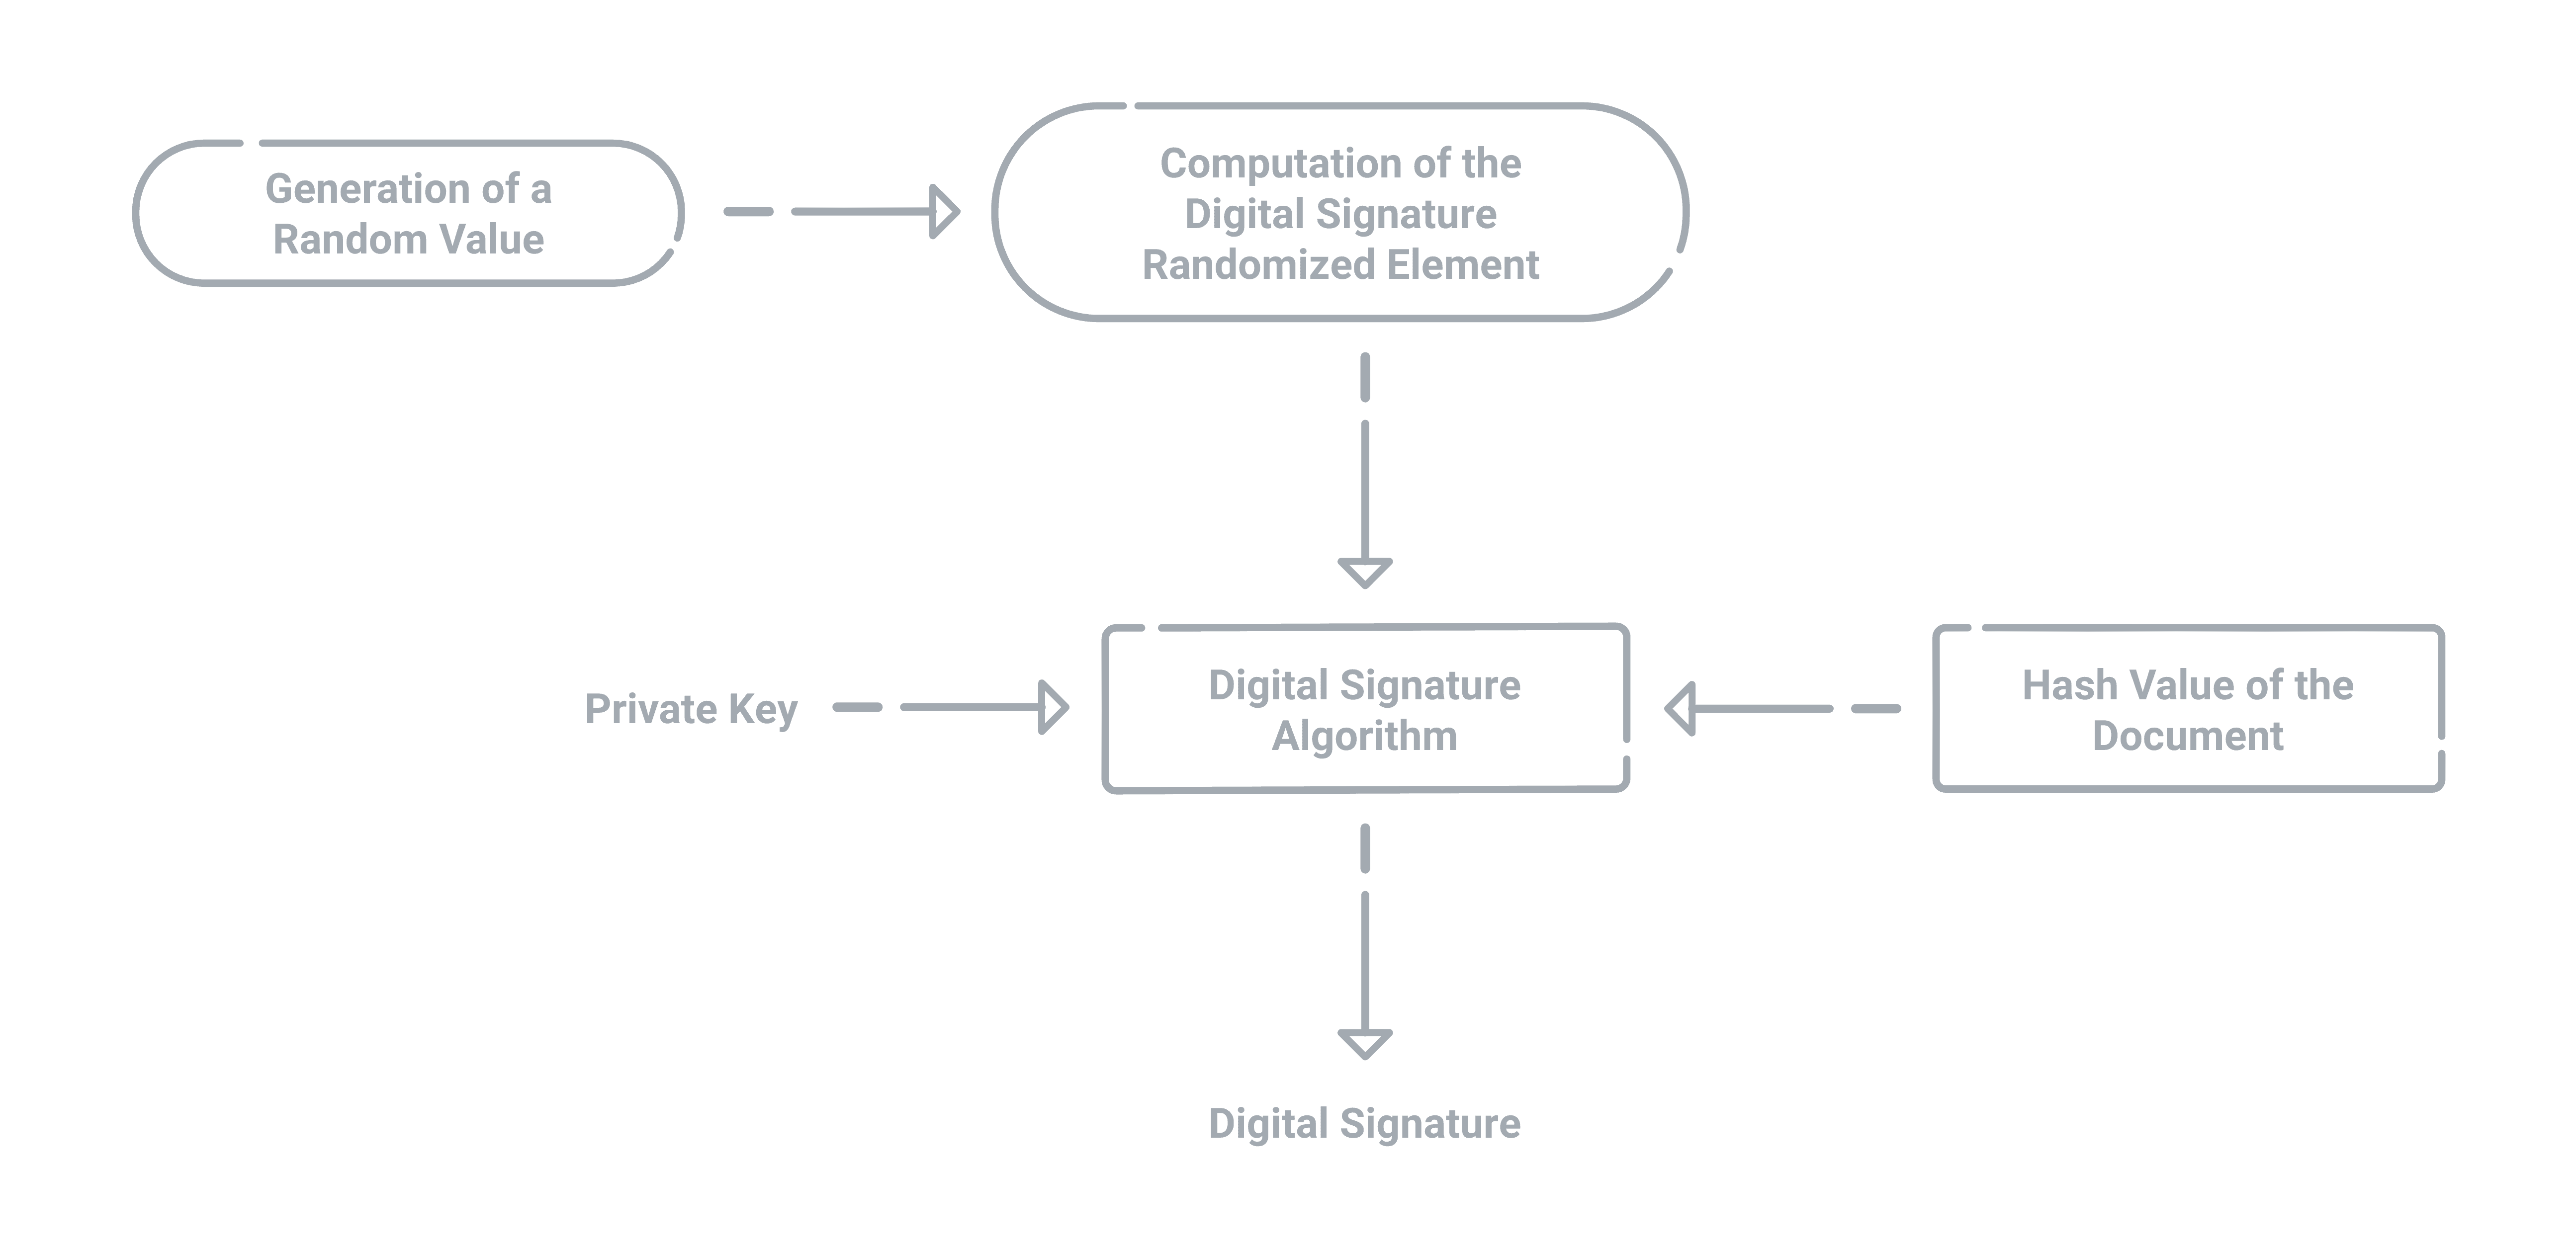 The process for generating a PKI digital signature